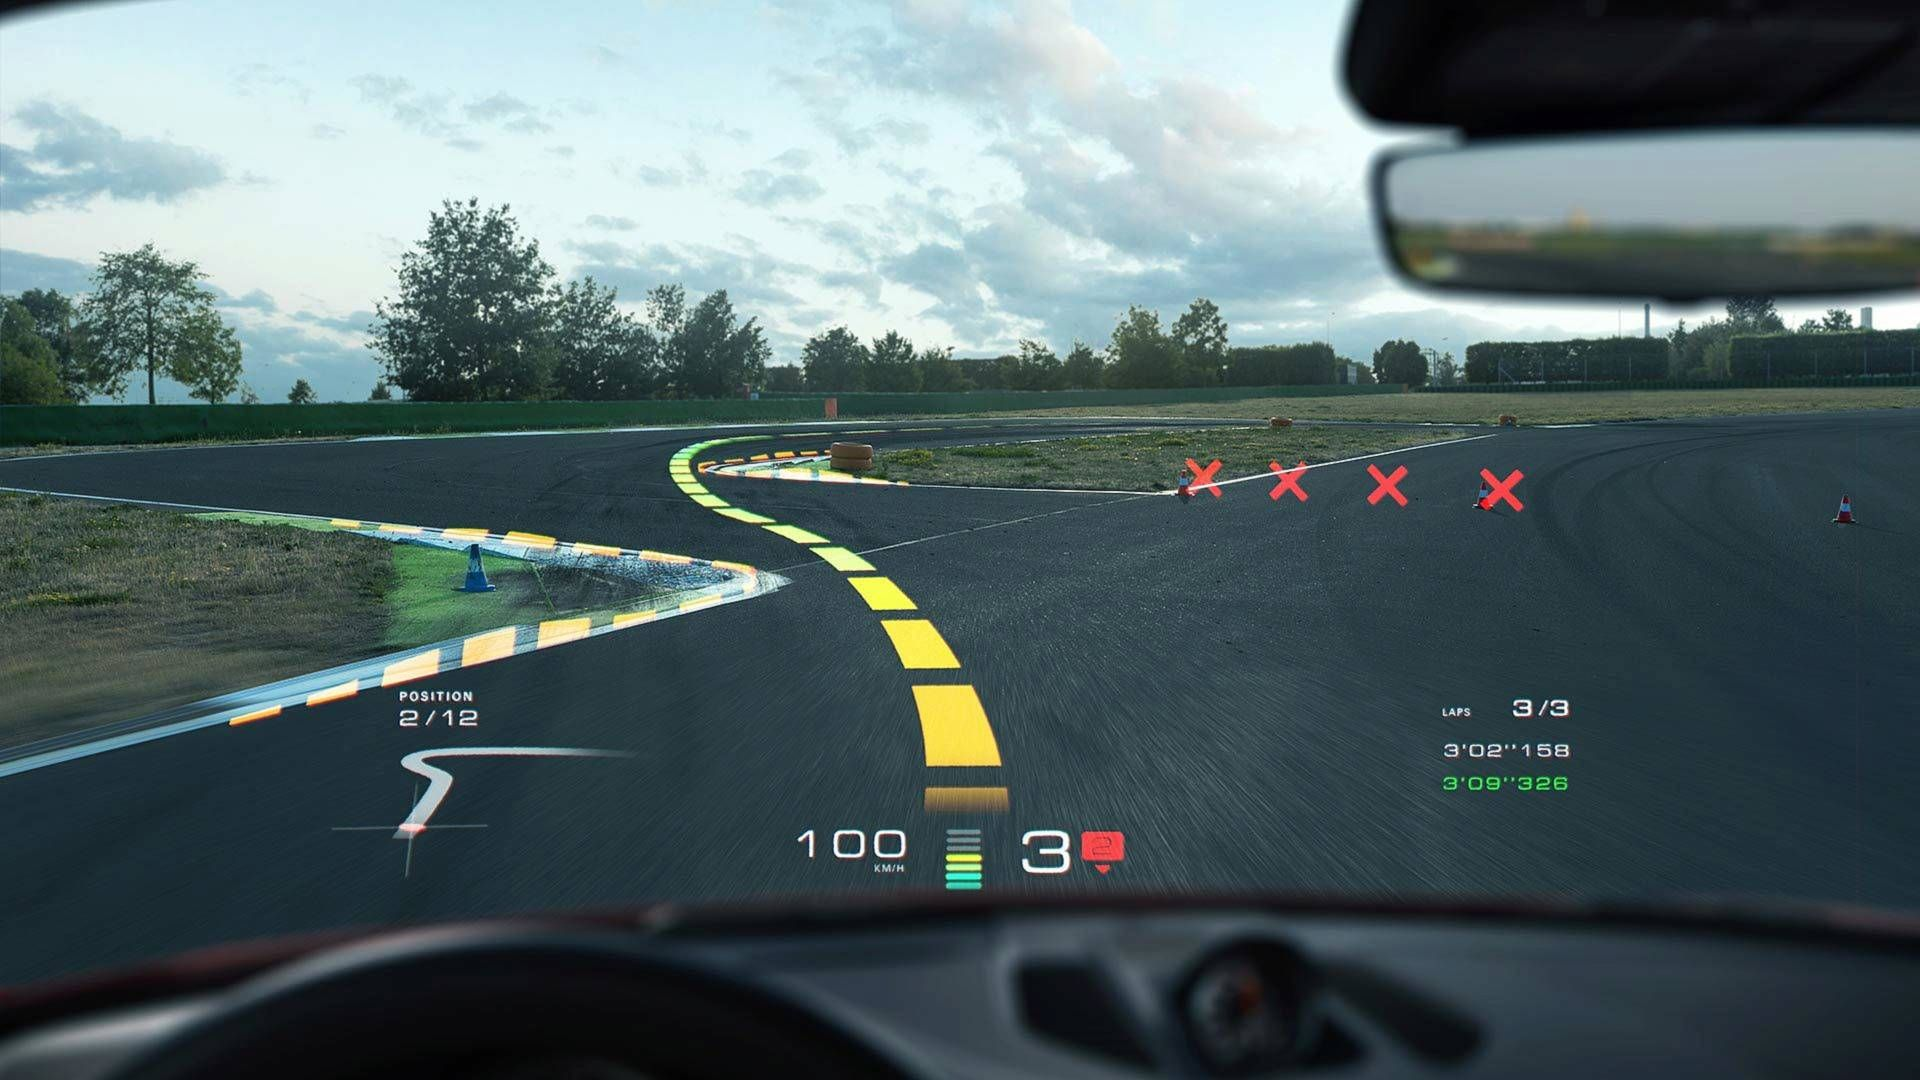 Porsche And Hyundai Are Looking To Add Augmented Reality